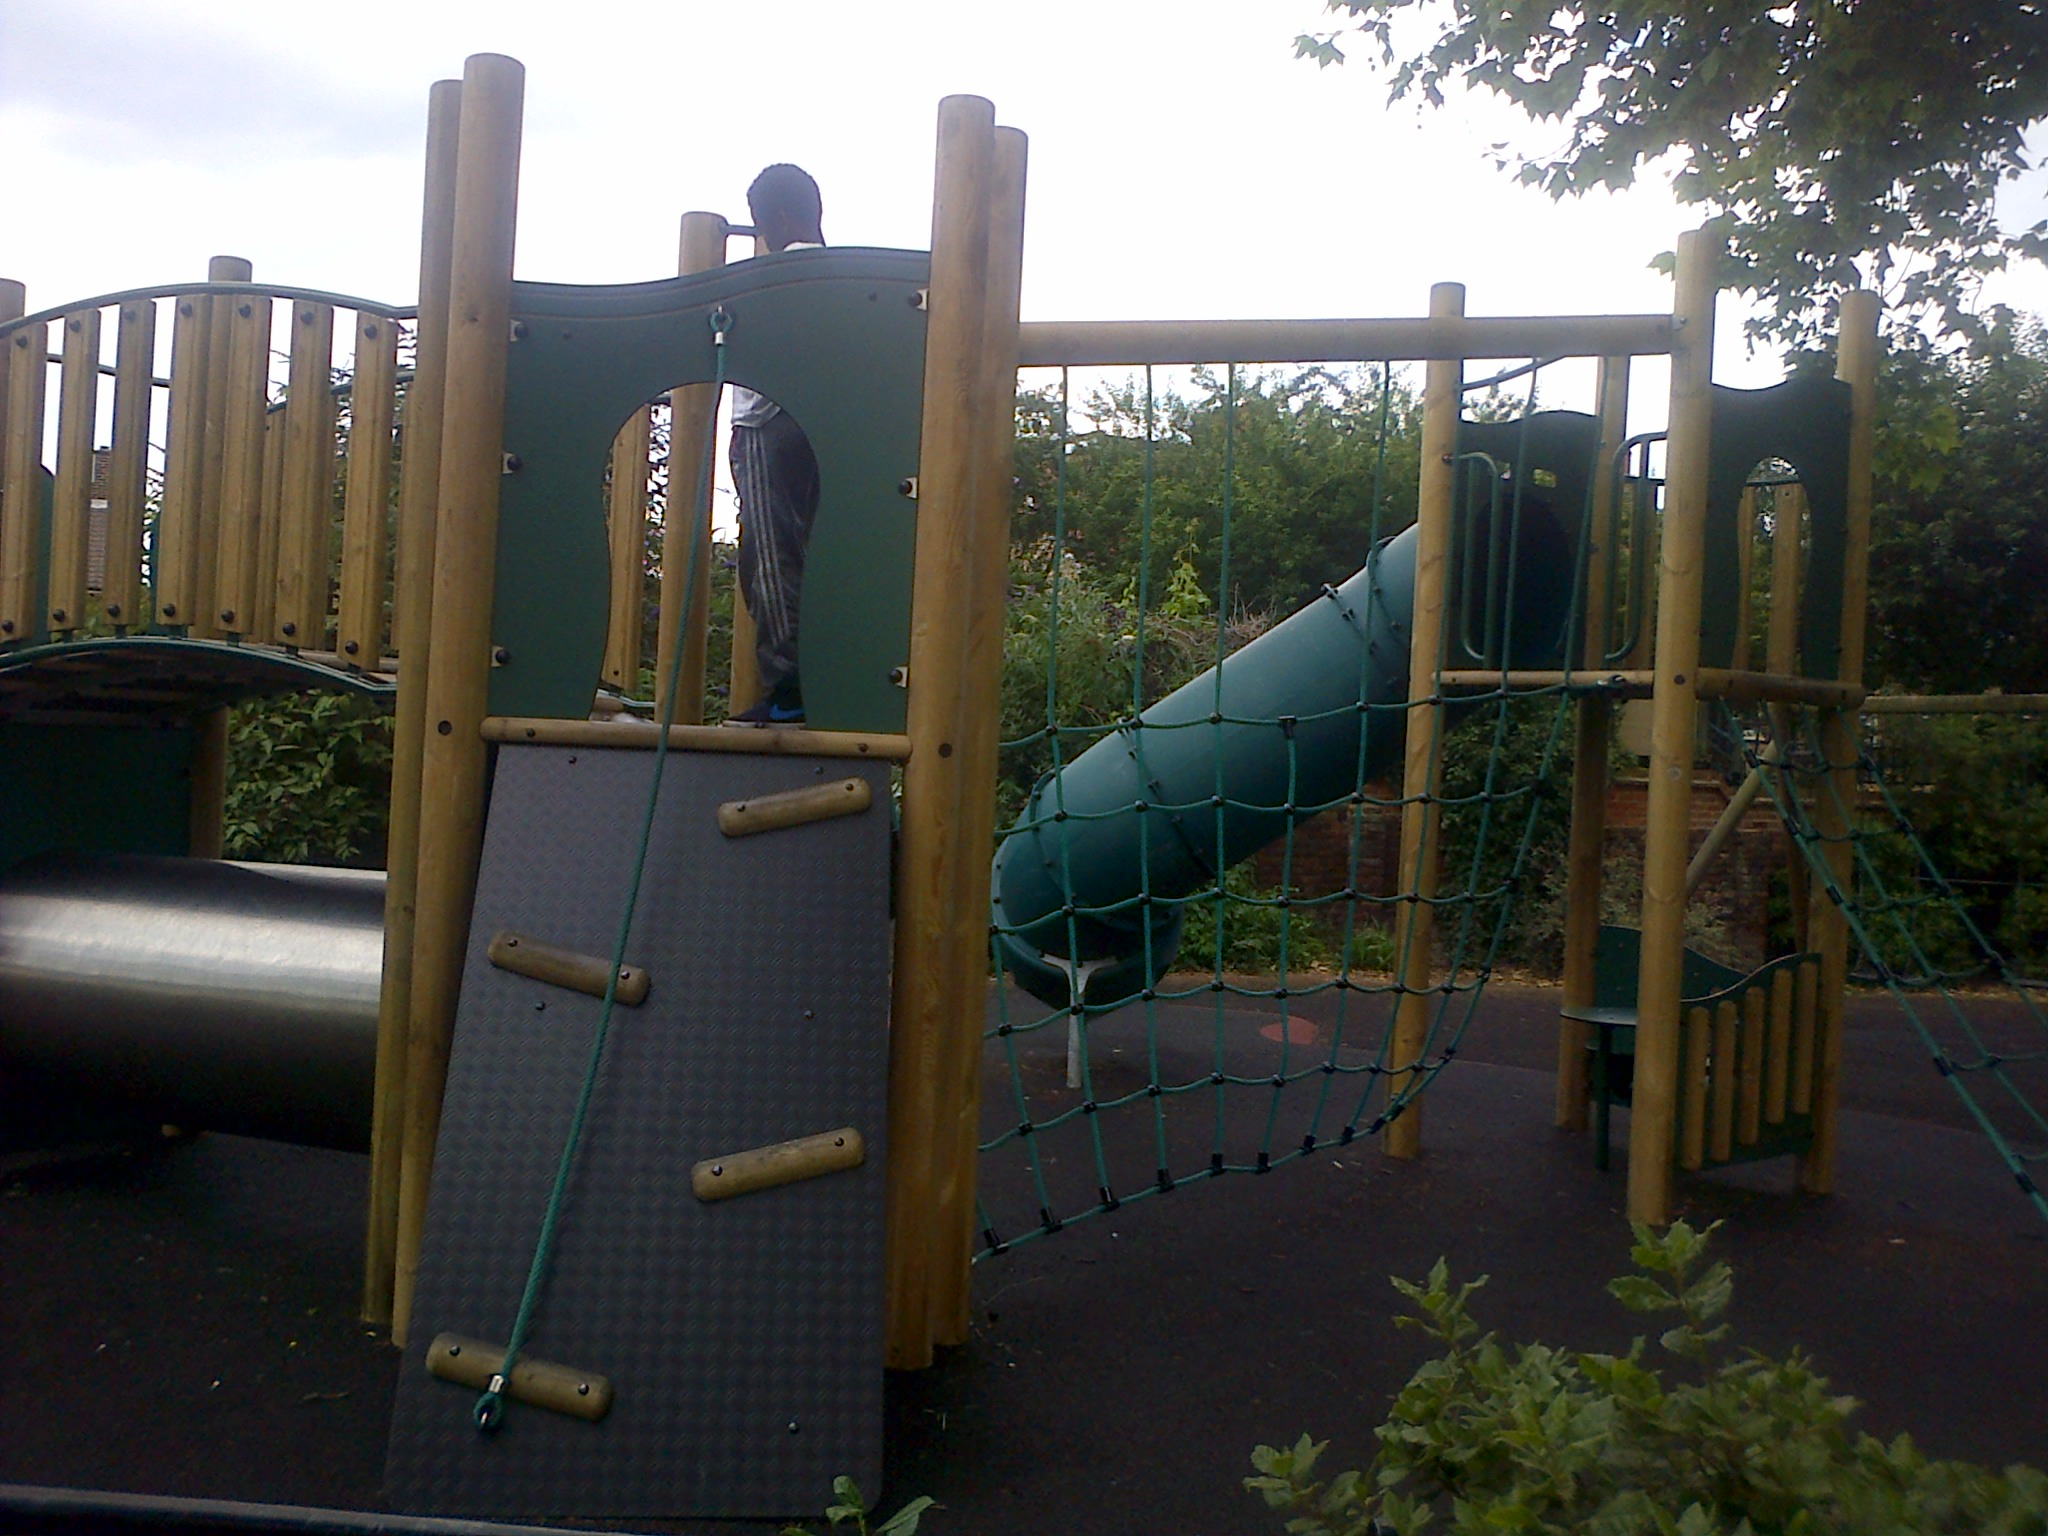 The Playground at Manor House Gardens